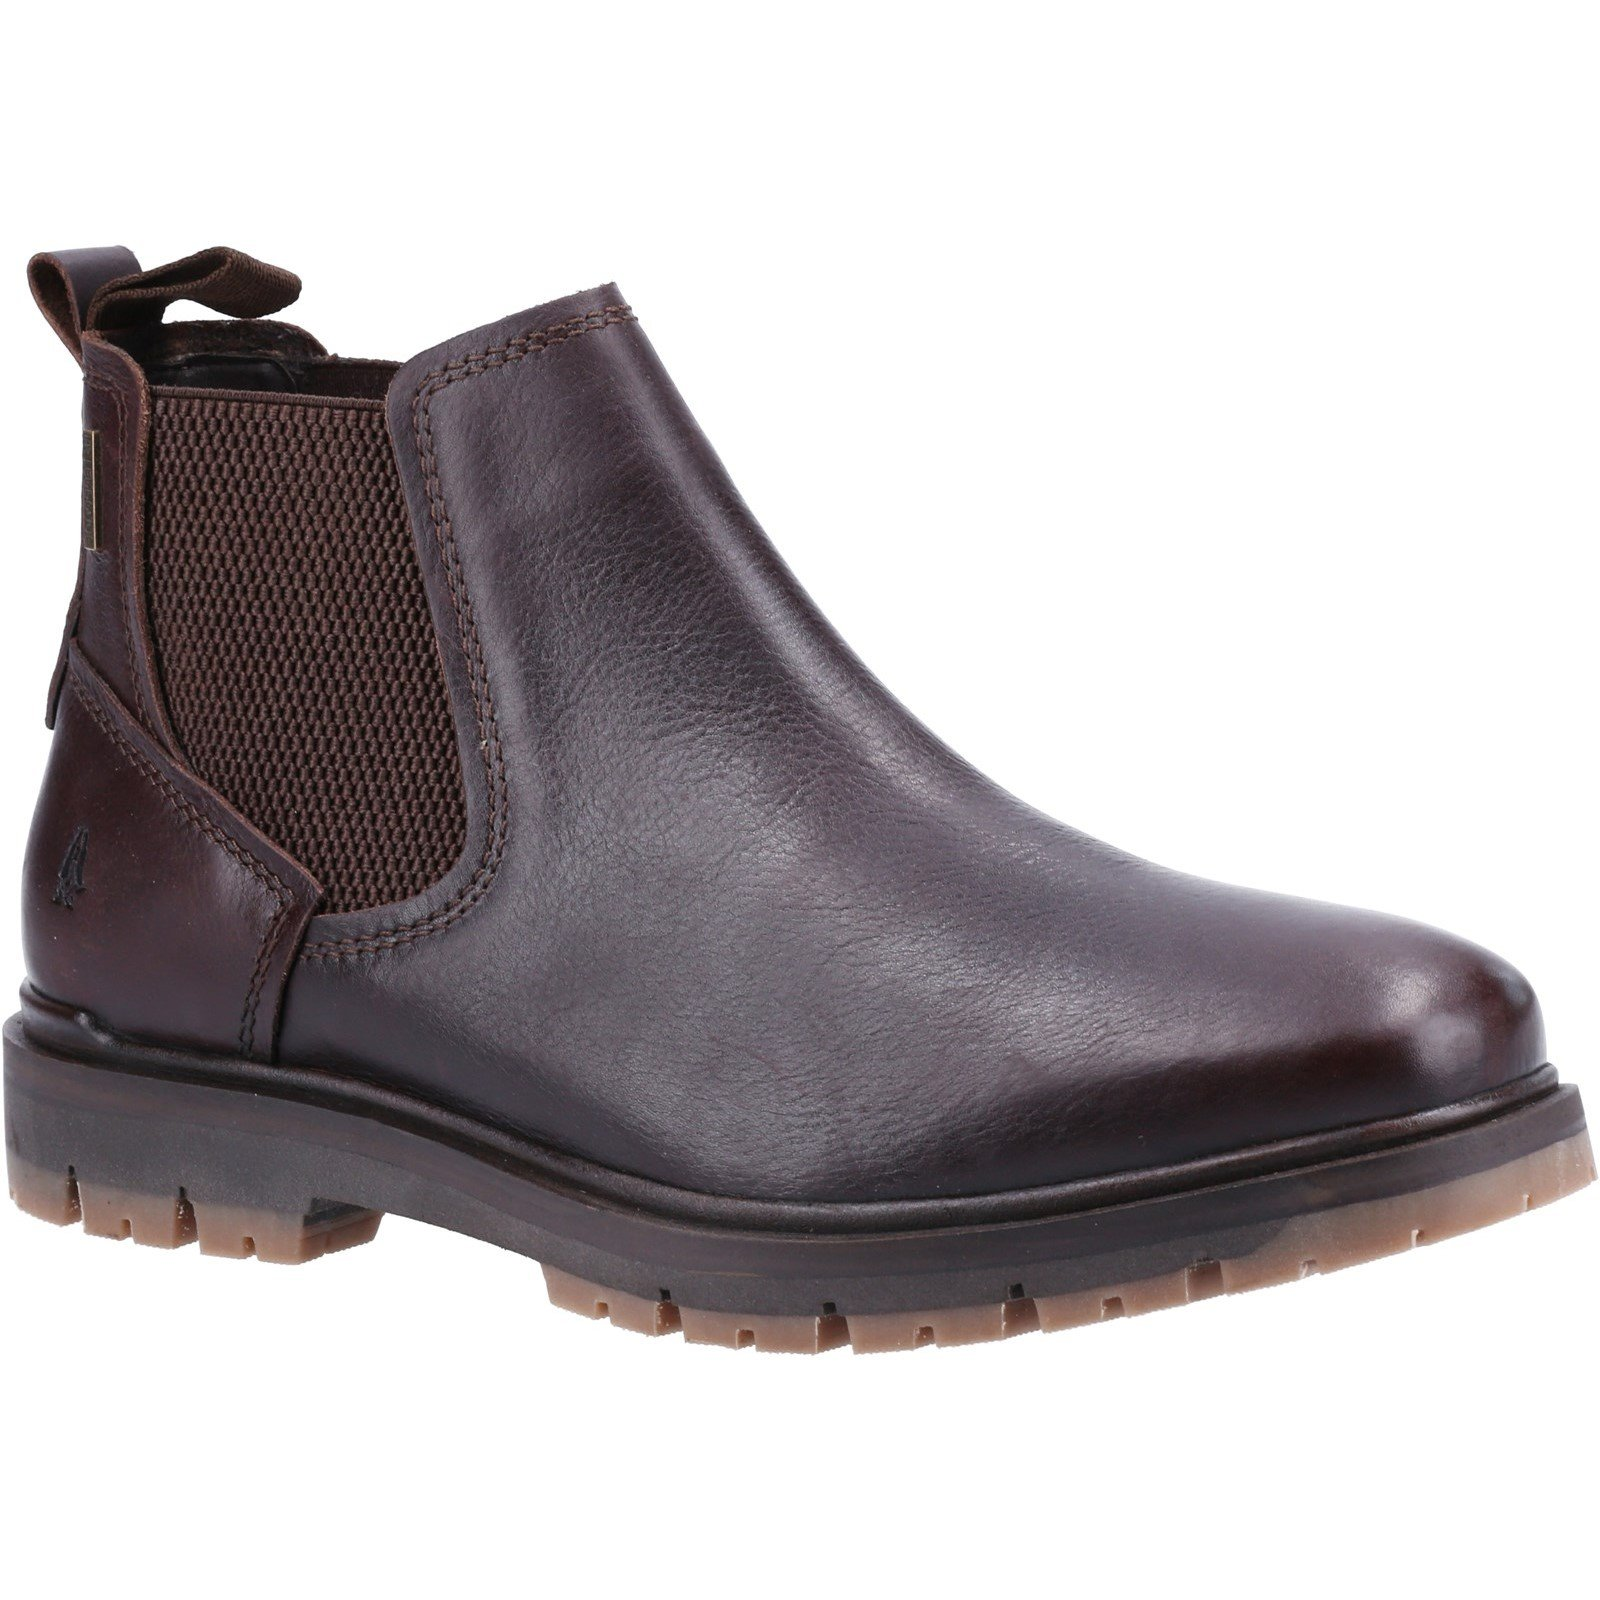 Hush Puppies Men's Paxton Chelsea Boot Various Colours 32882 - Brown 8